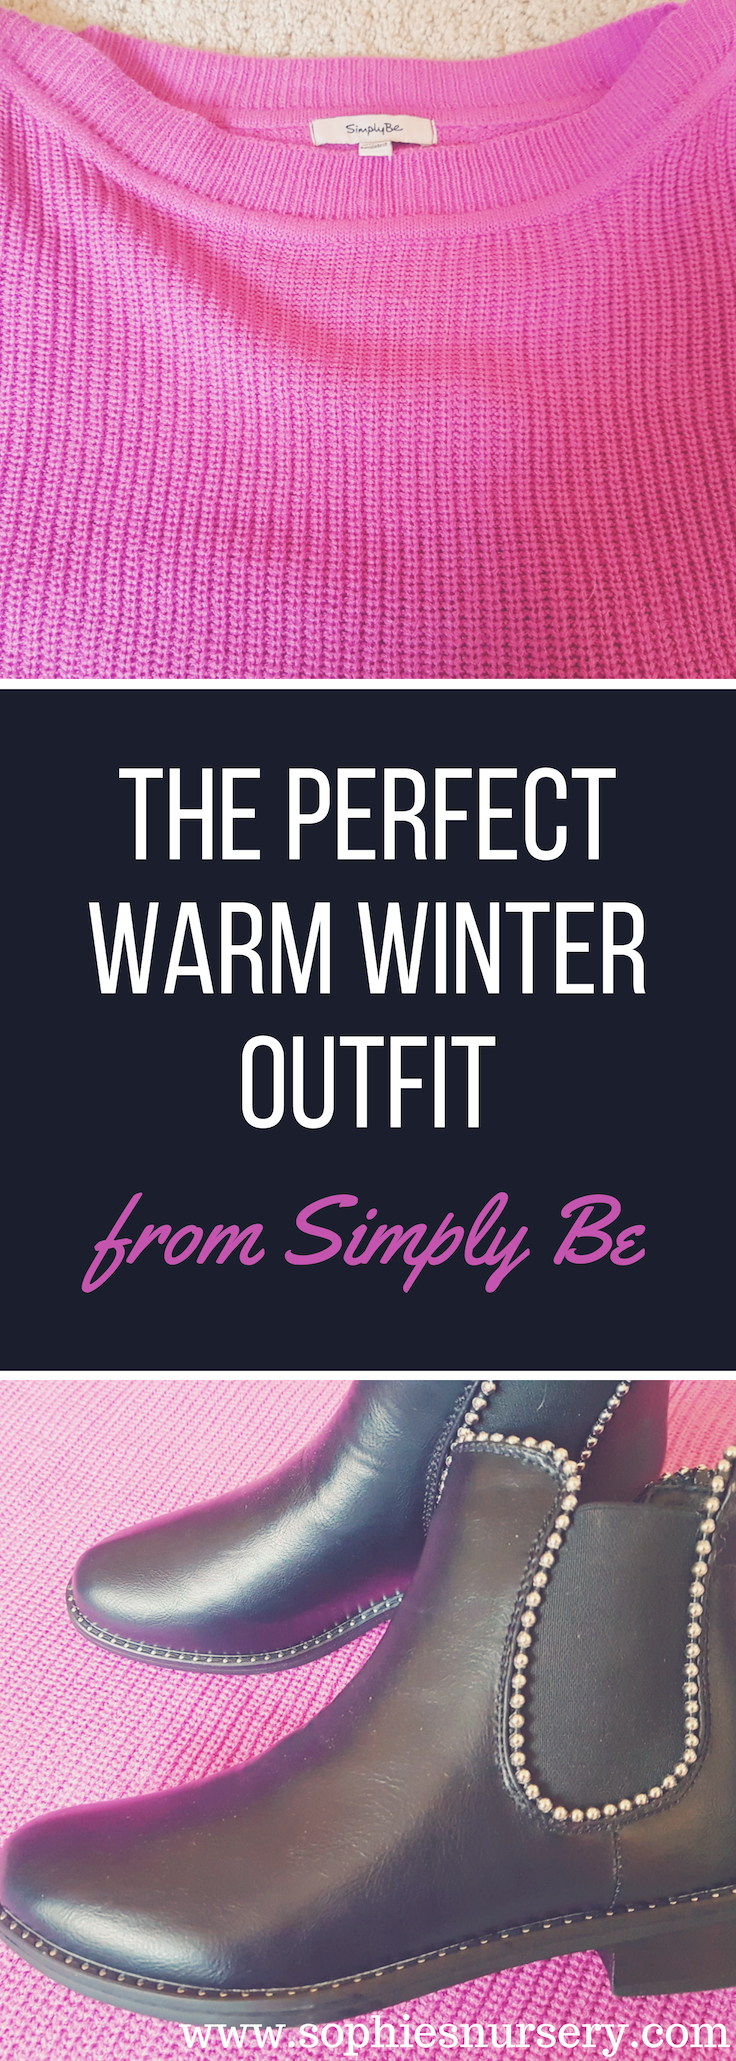 It's super chilly outside so bring on the woolly jumpers & ankle boots! We love this warm winter outfit from @SimplyBe - super cosy & casual!